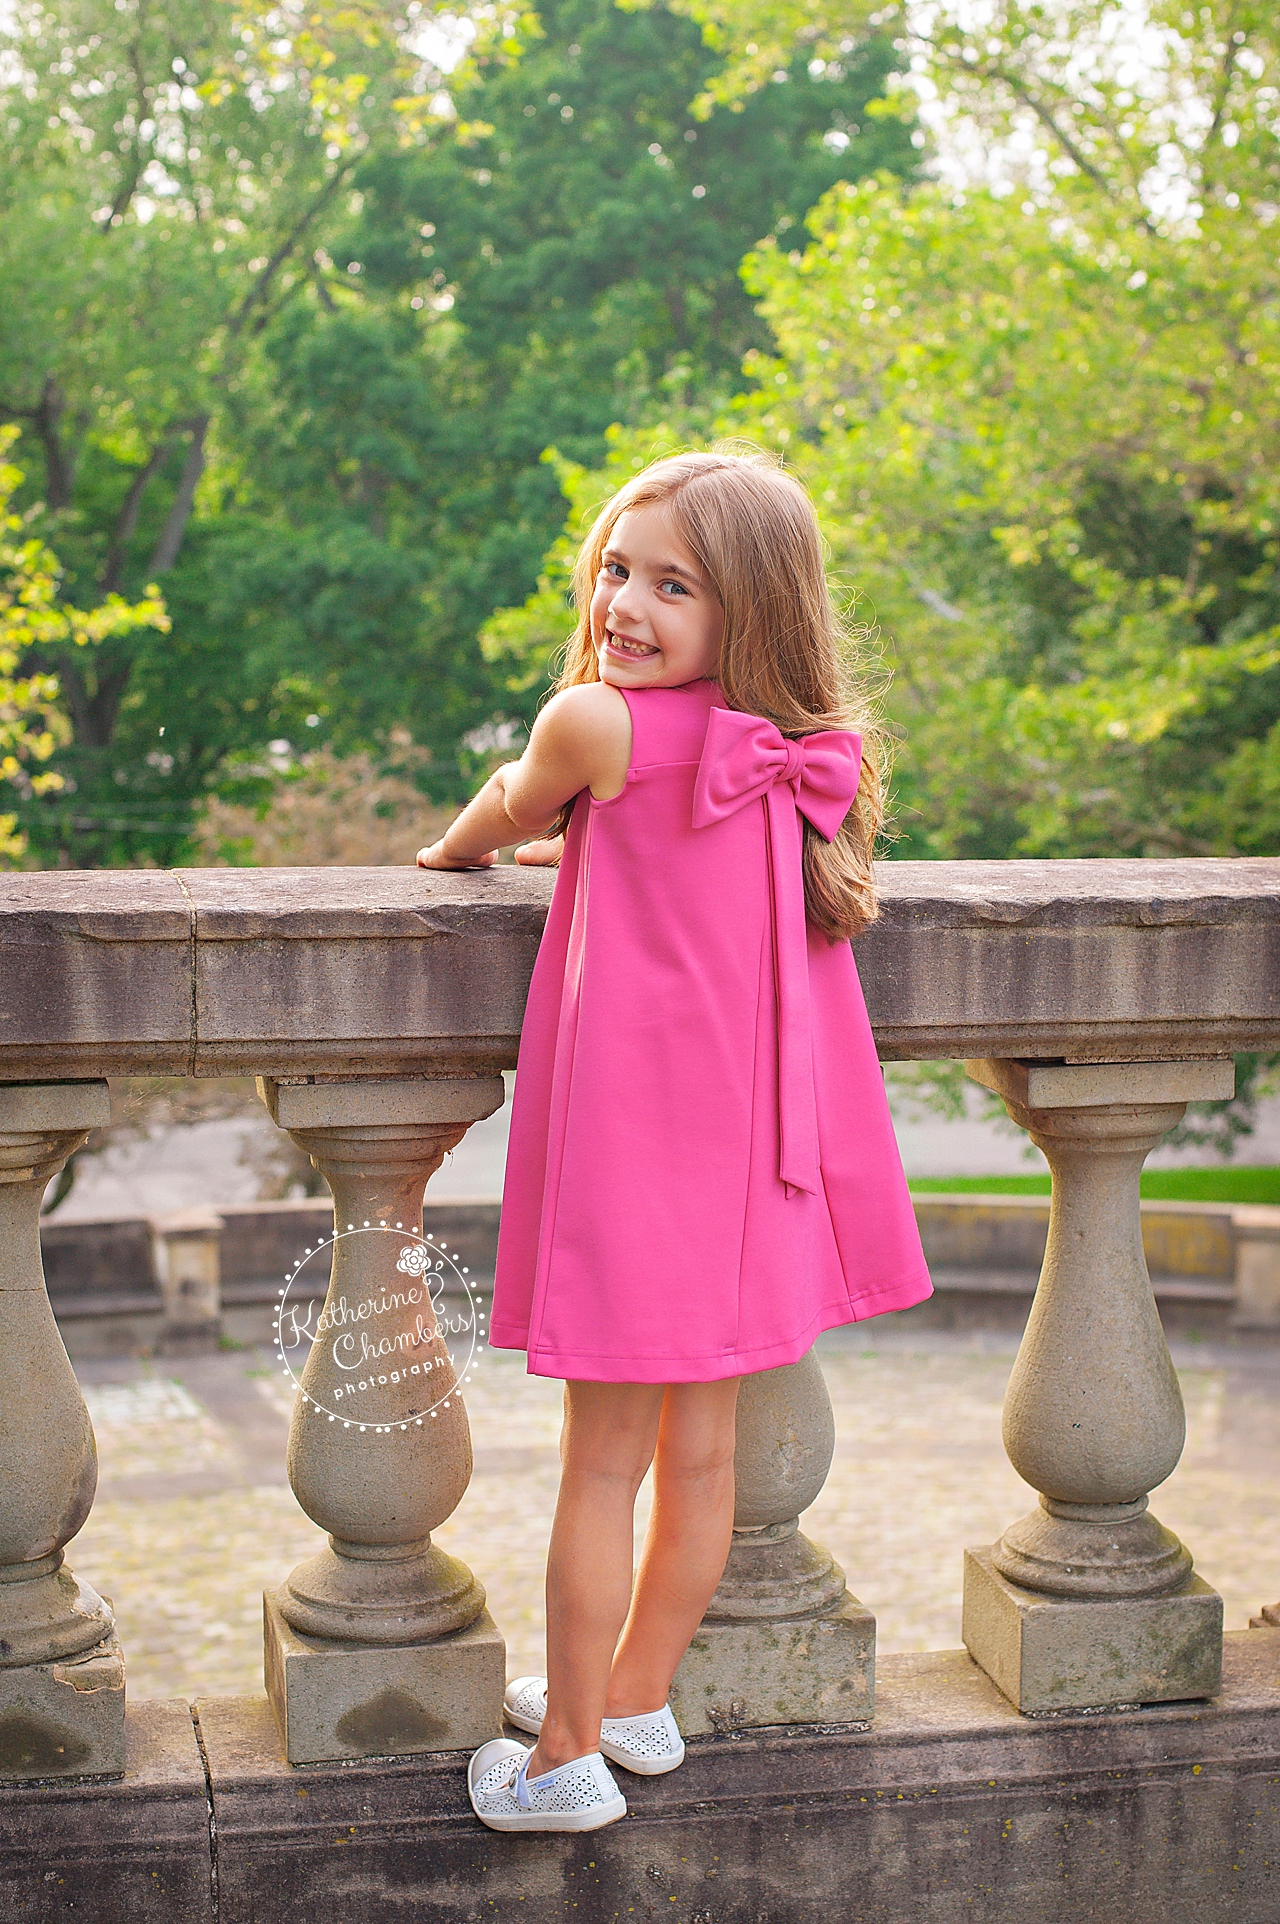 Lionheart Lamb Dress | Child Photographer